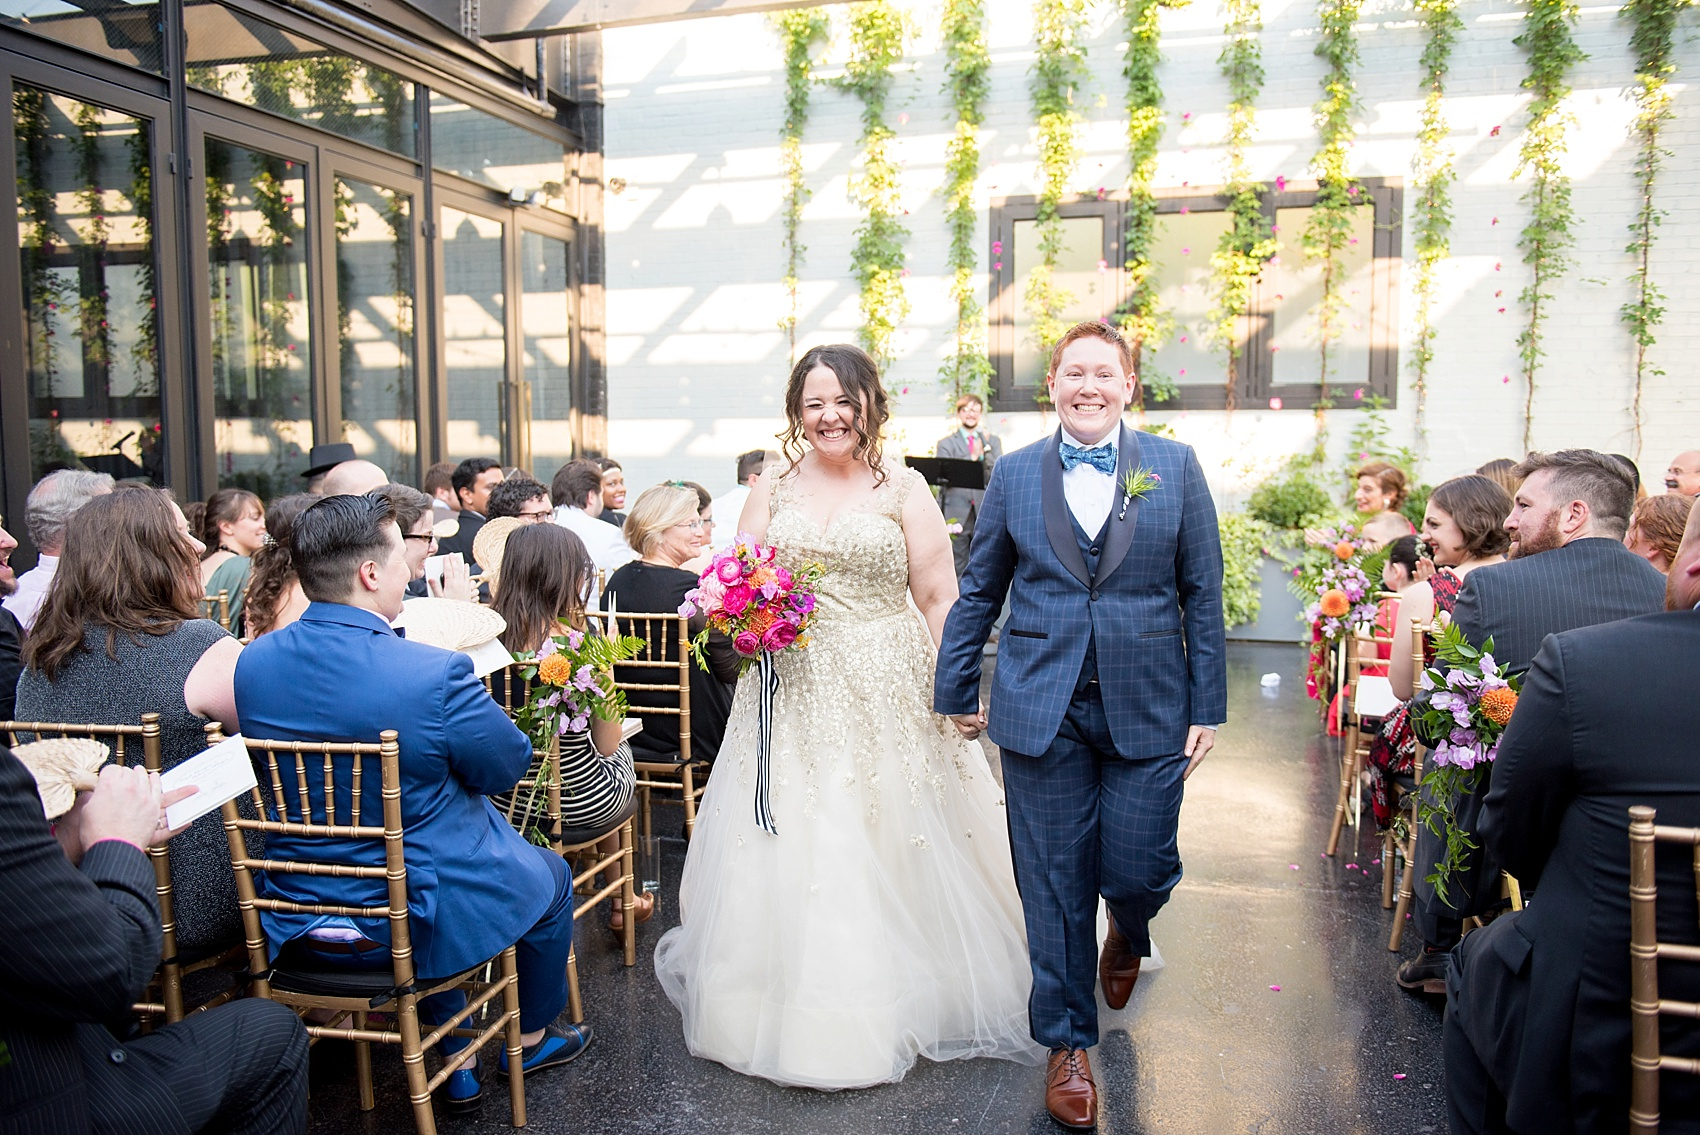 501 Union lesbian wedding ceremony with floral backdrop. Photos by Mikkel Paige Photography, in Brooklyn, NYC. Planning by Ashley M Chamblin Events.